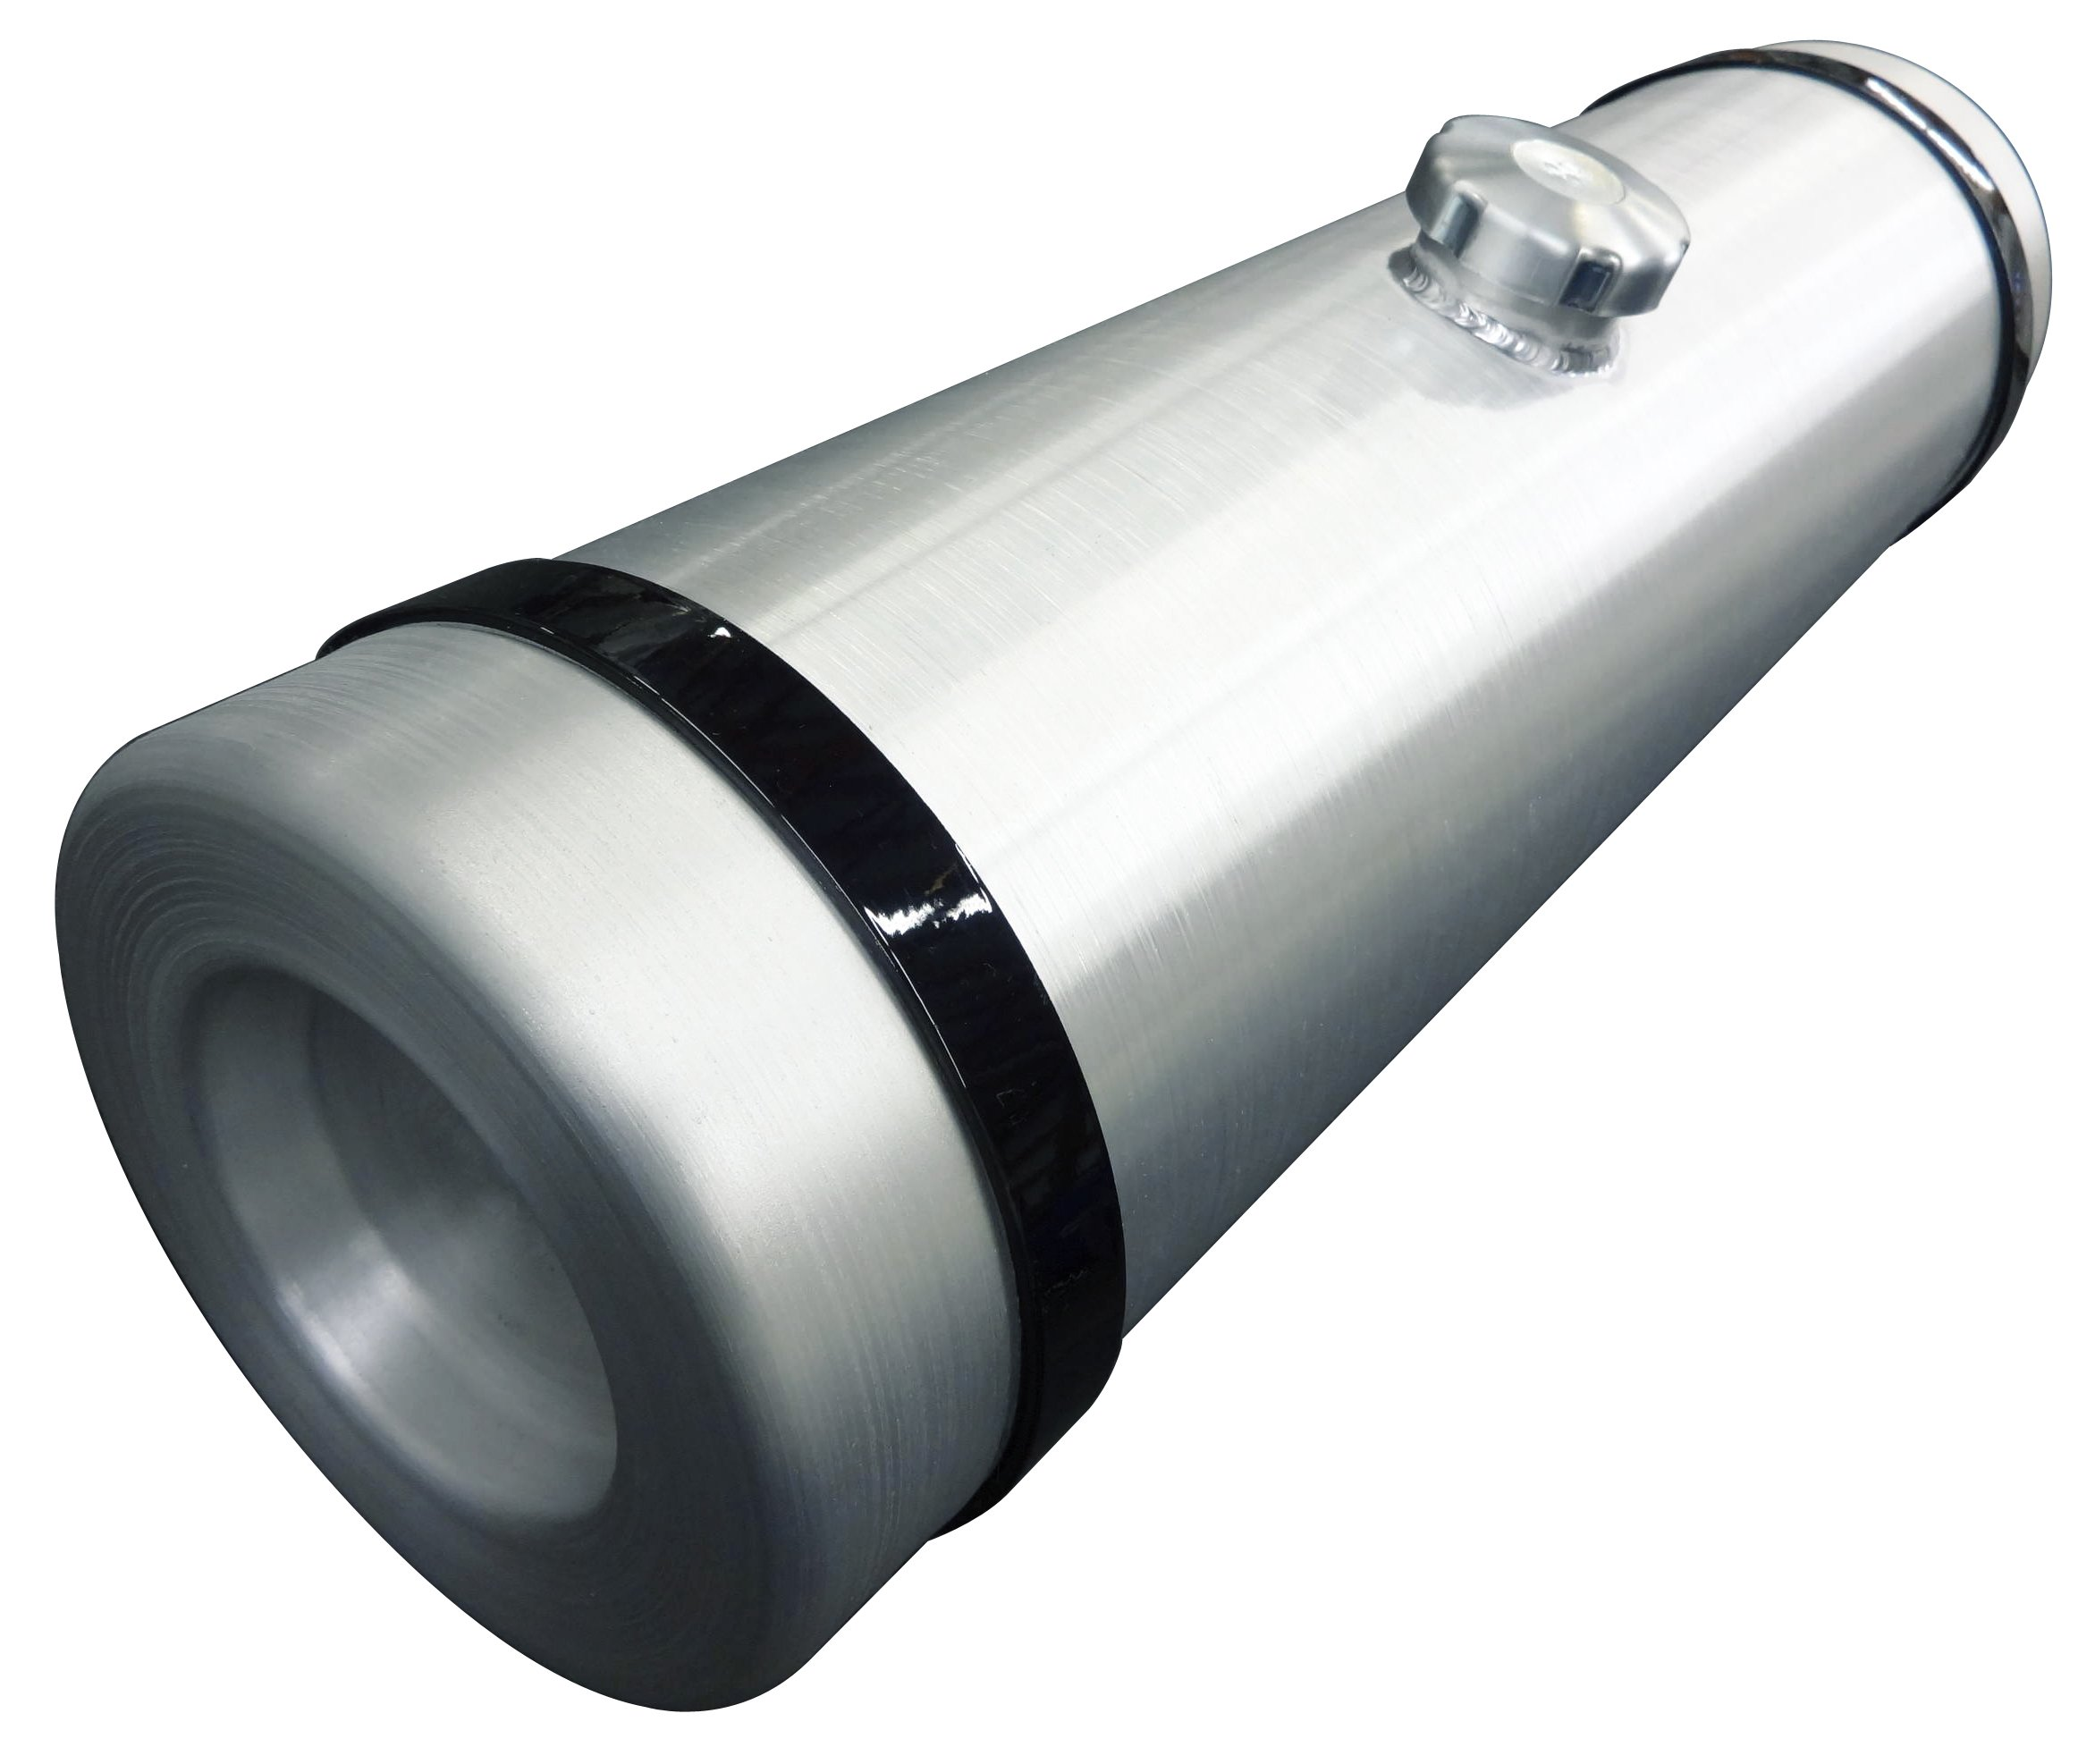 8x33 Center Fill Round Spun Aluminum Gas Tank - 7.25 Gallon - Baja Bug, Trike, Dune Buggy, Trike - 3/8 NPT - Made in the USA!